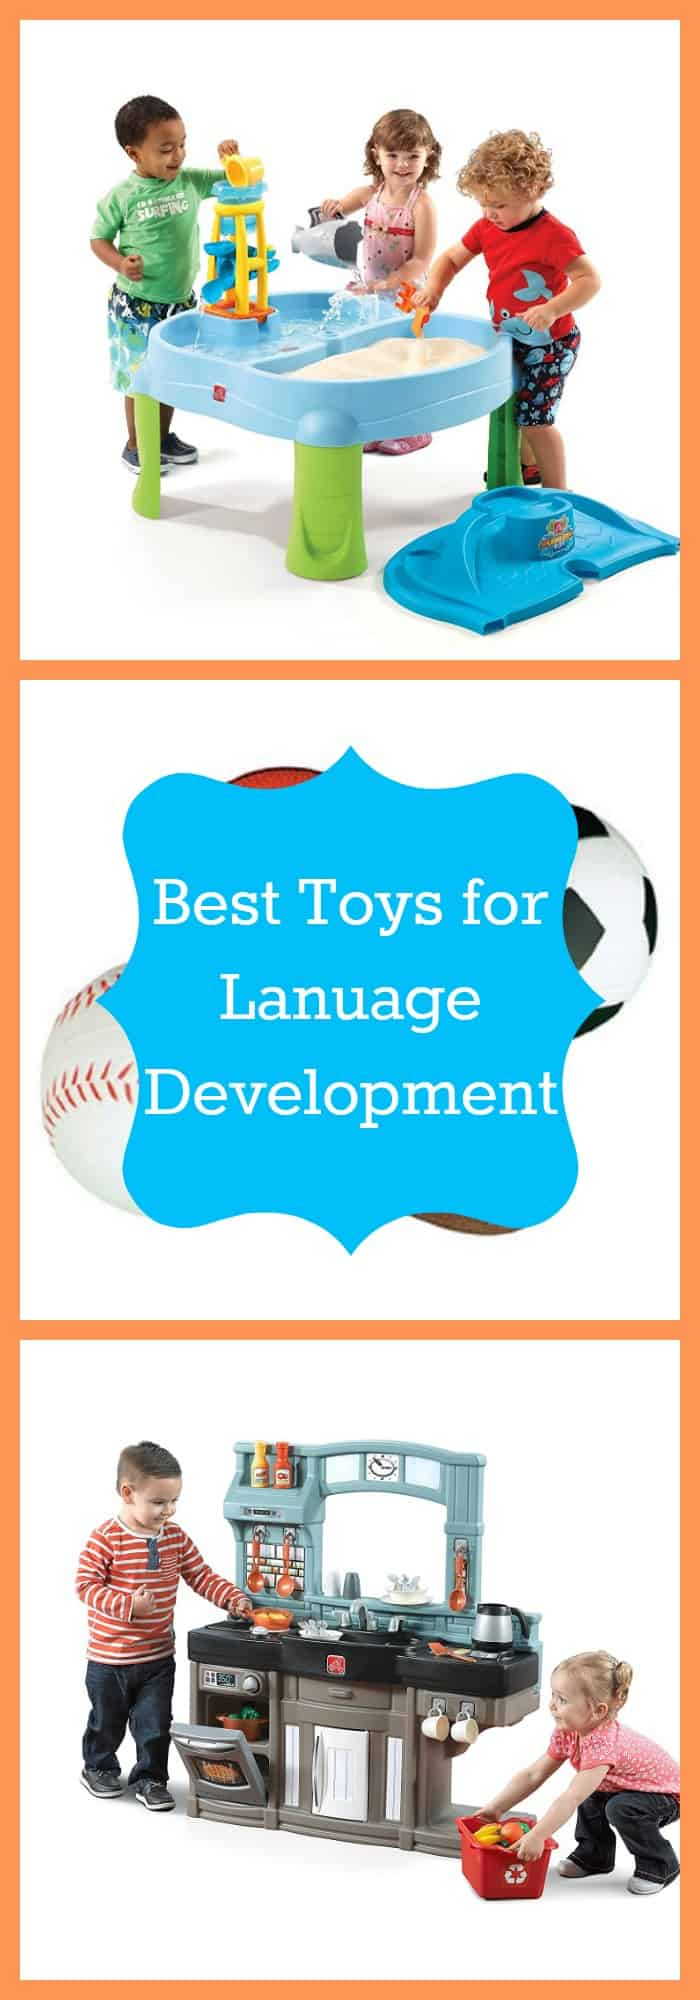 Toys For Speech Development : Best toys for language development the organized mom